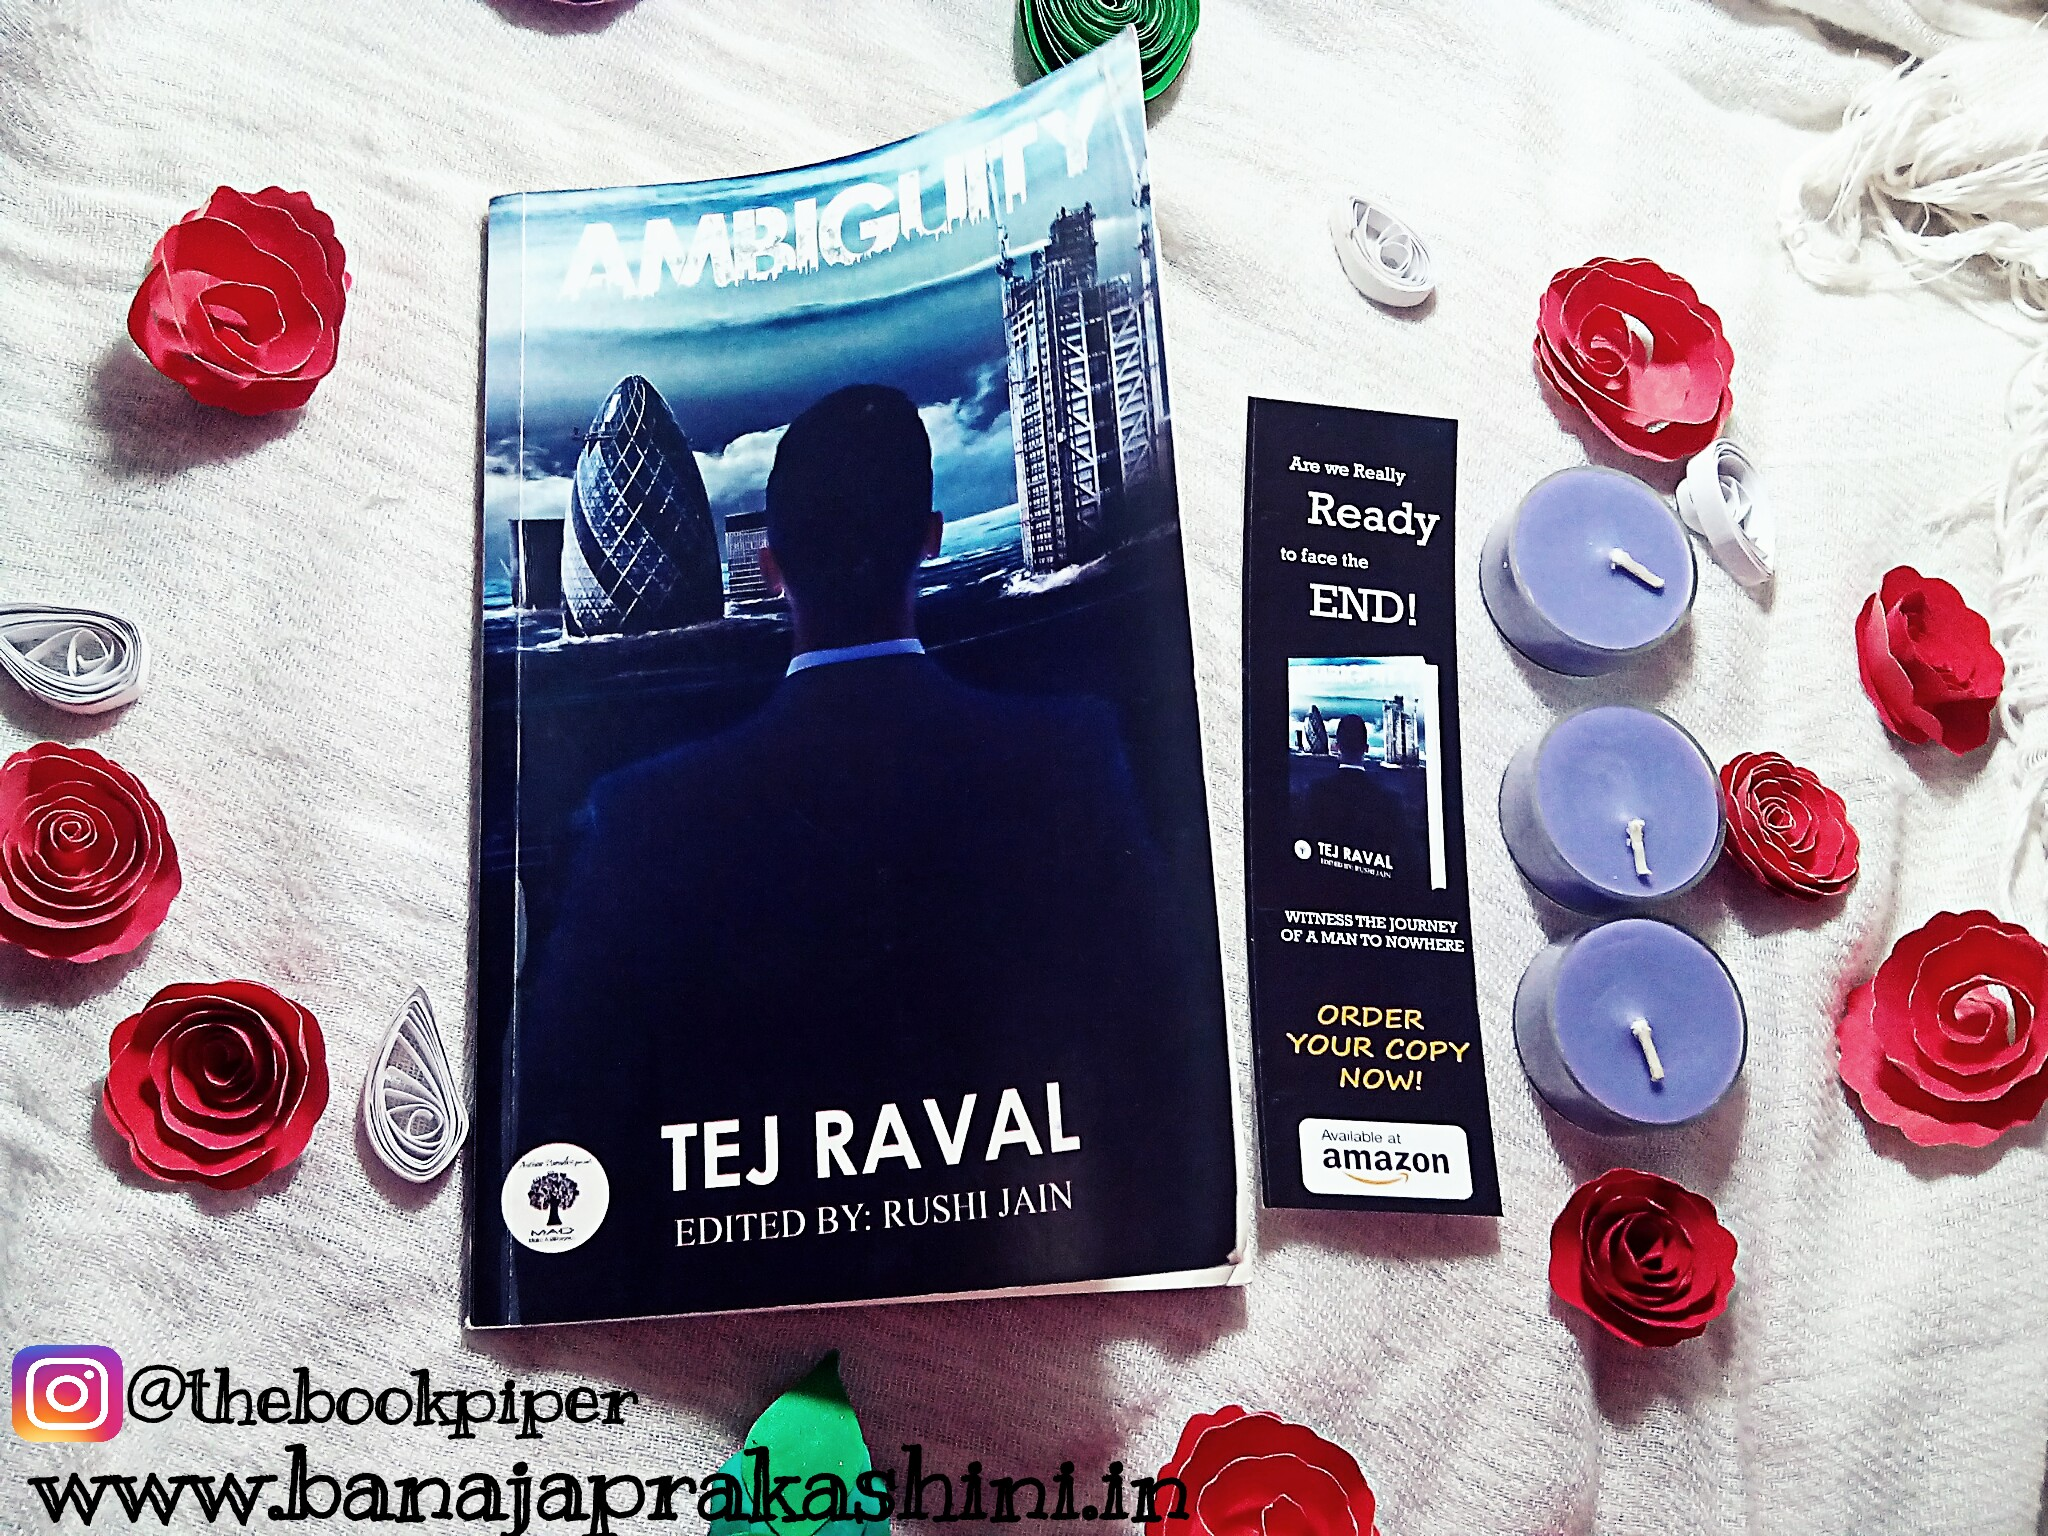 Review Pen: Ambiguity By Tej Raval